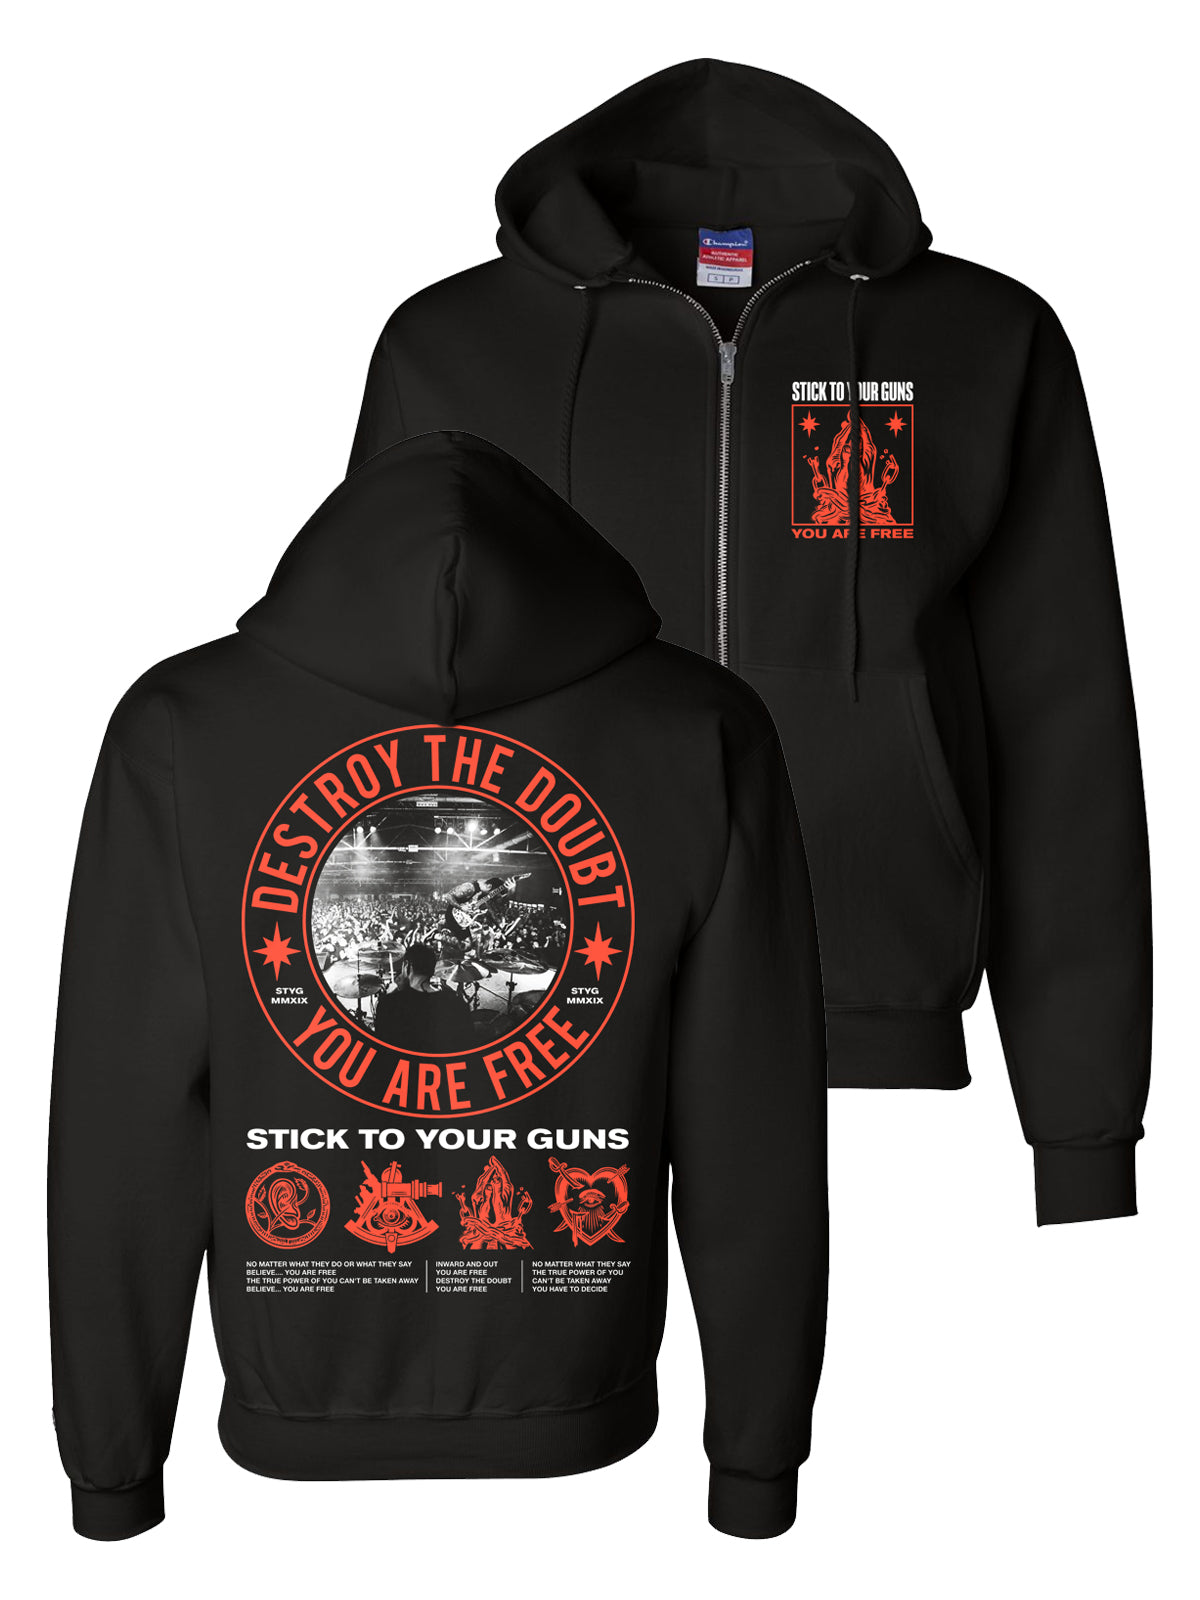 Stick to Your Guns - You Are Free Champion Zip-Up - Merch Limited